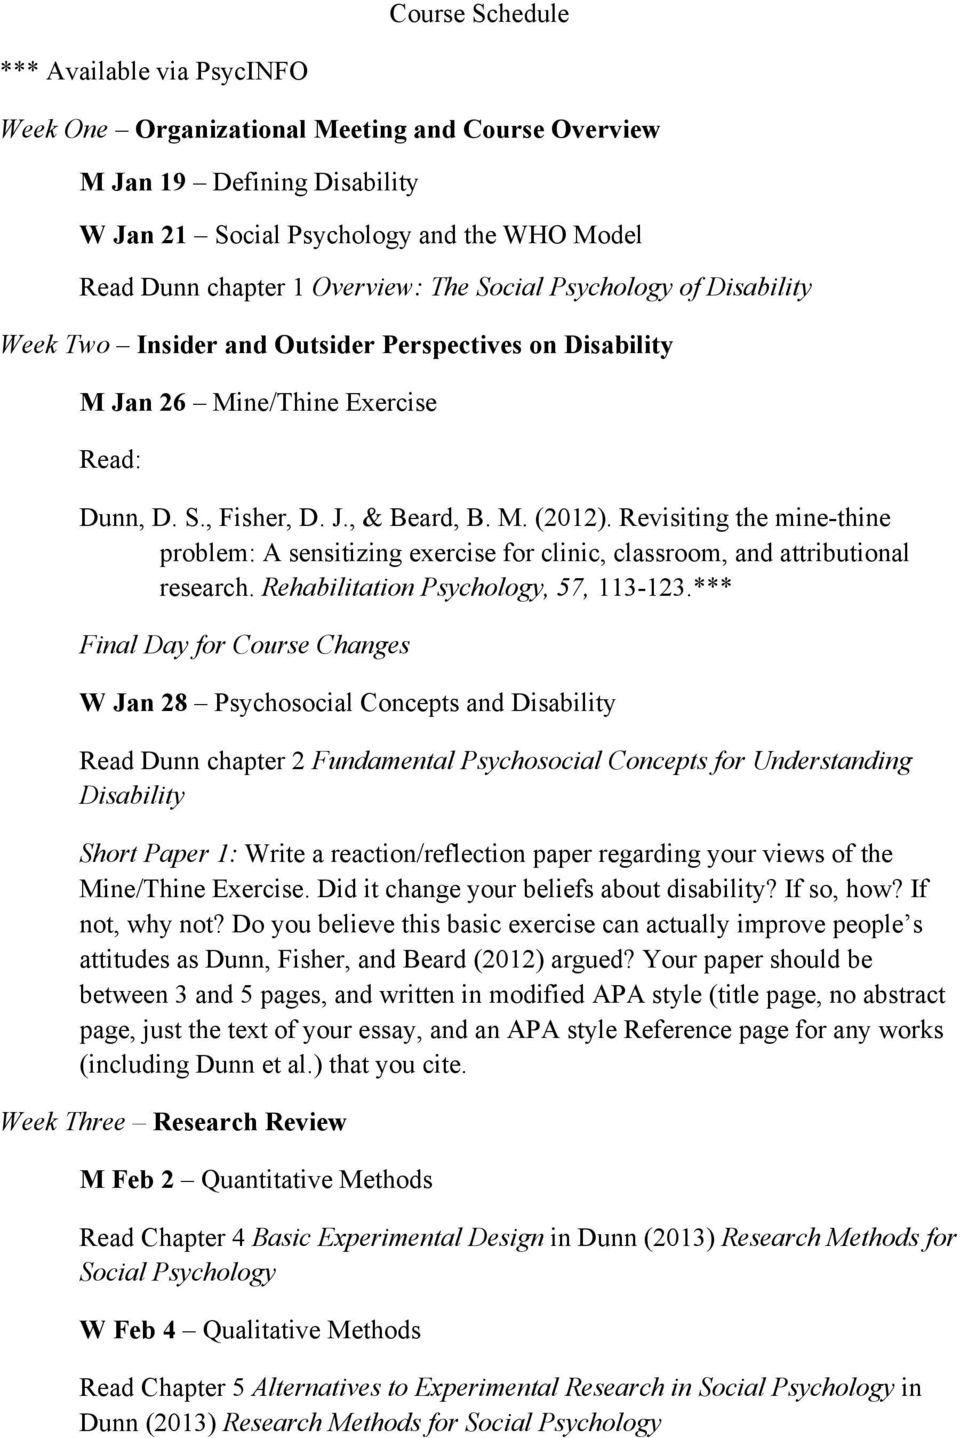 Revisiting the mine-thine problem: A sensitizing exercise for clinic, classroom, and attributional research. Rehabilitation Psychology, 57, 113-123.